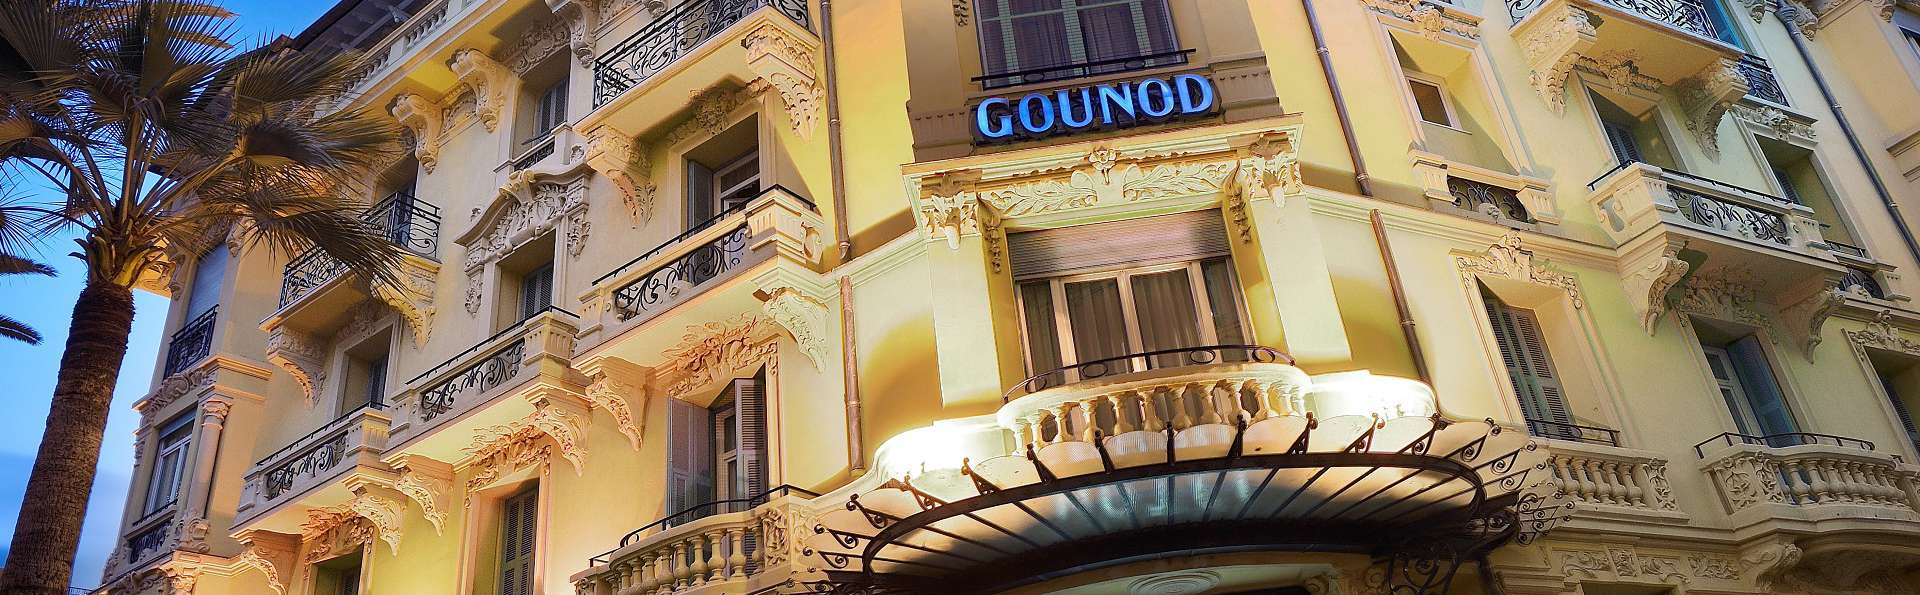 Hôtel Gounod - EDIT_NEW_FRONT.jpg